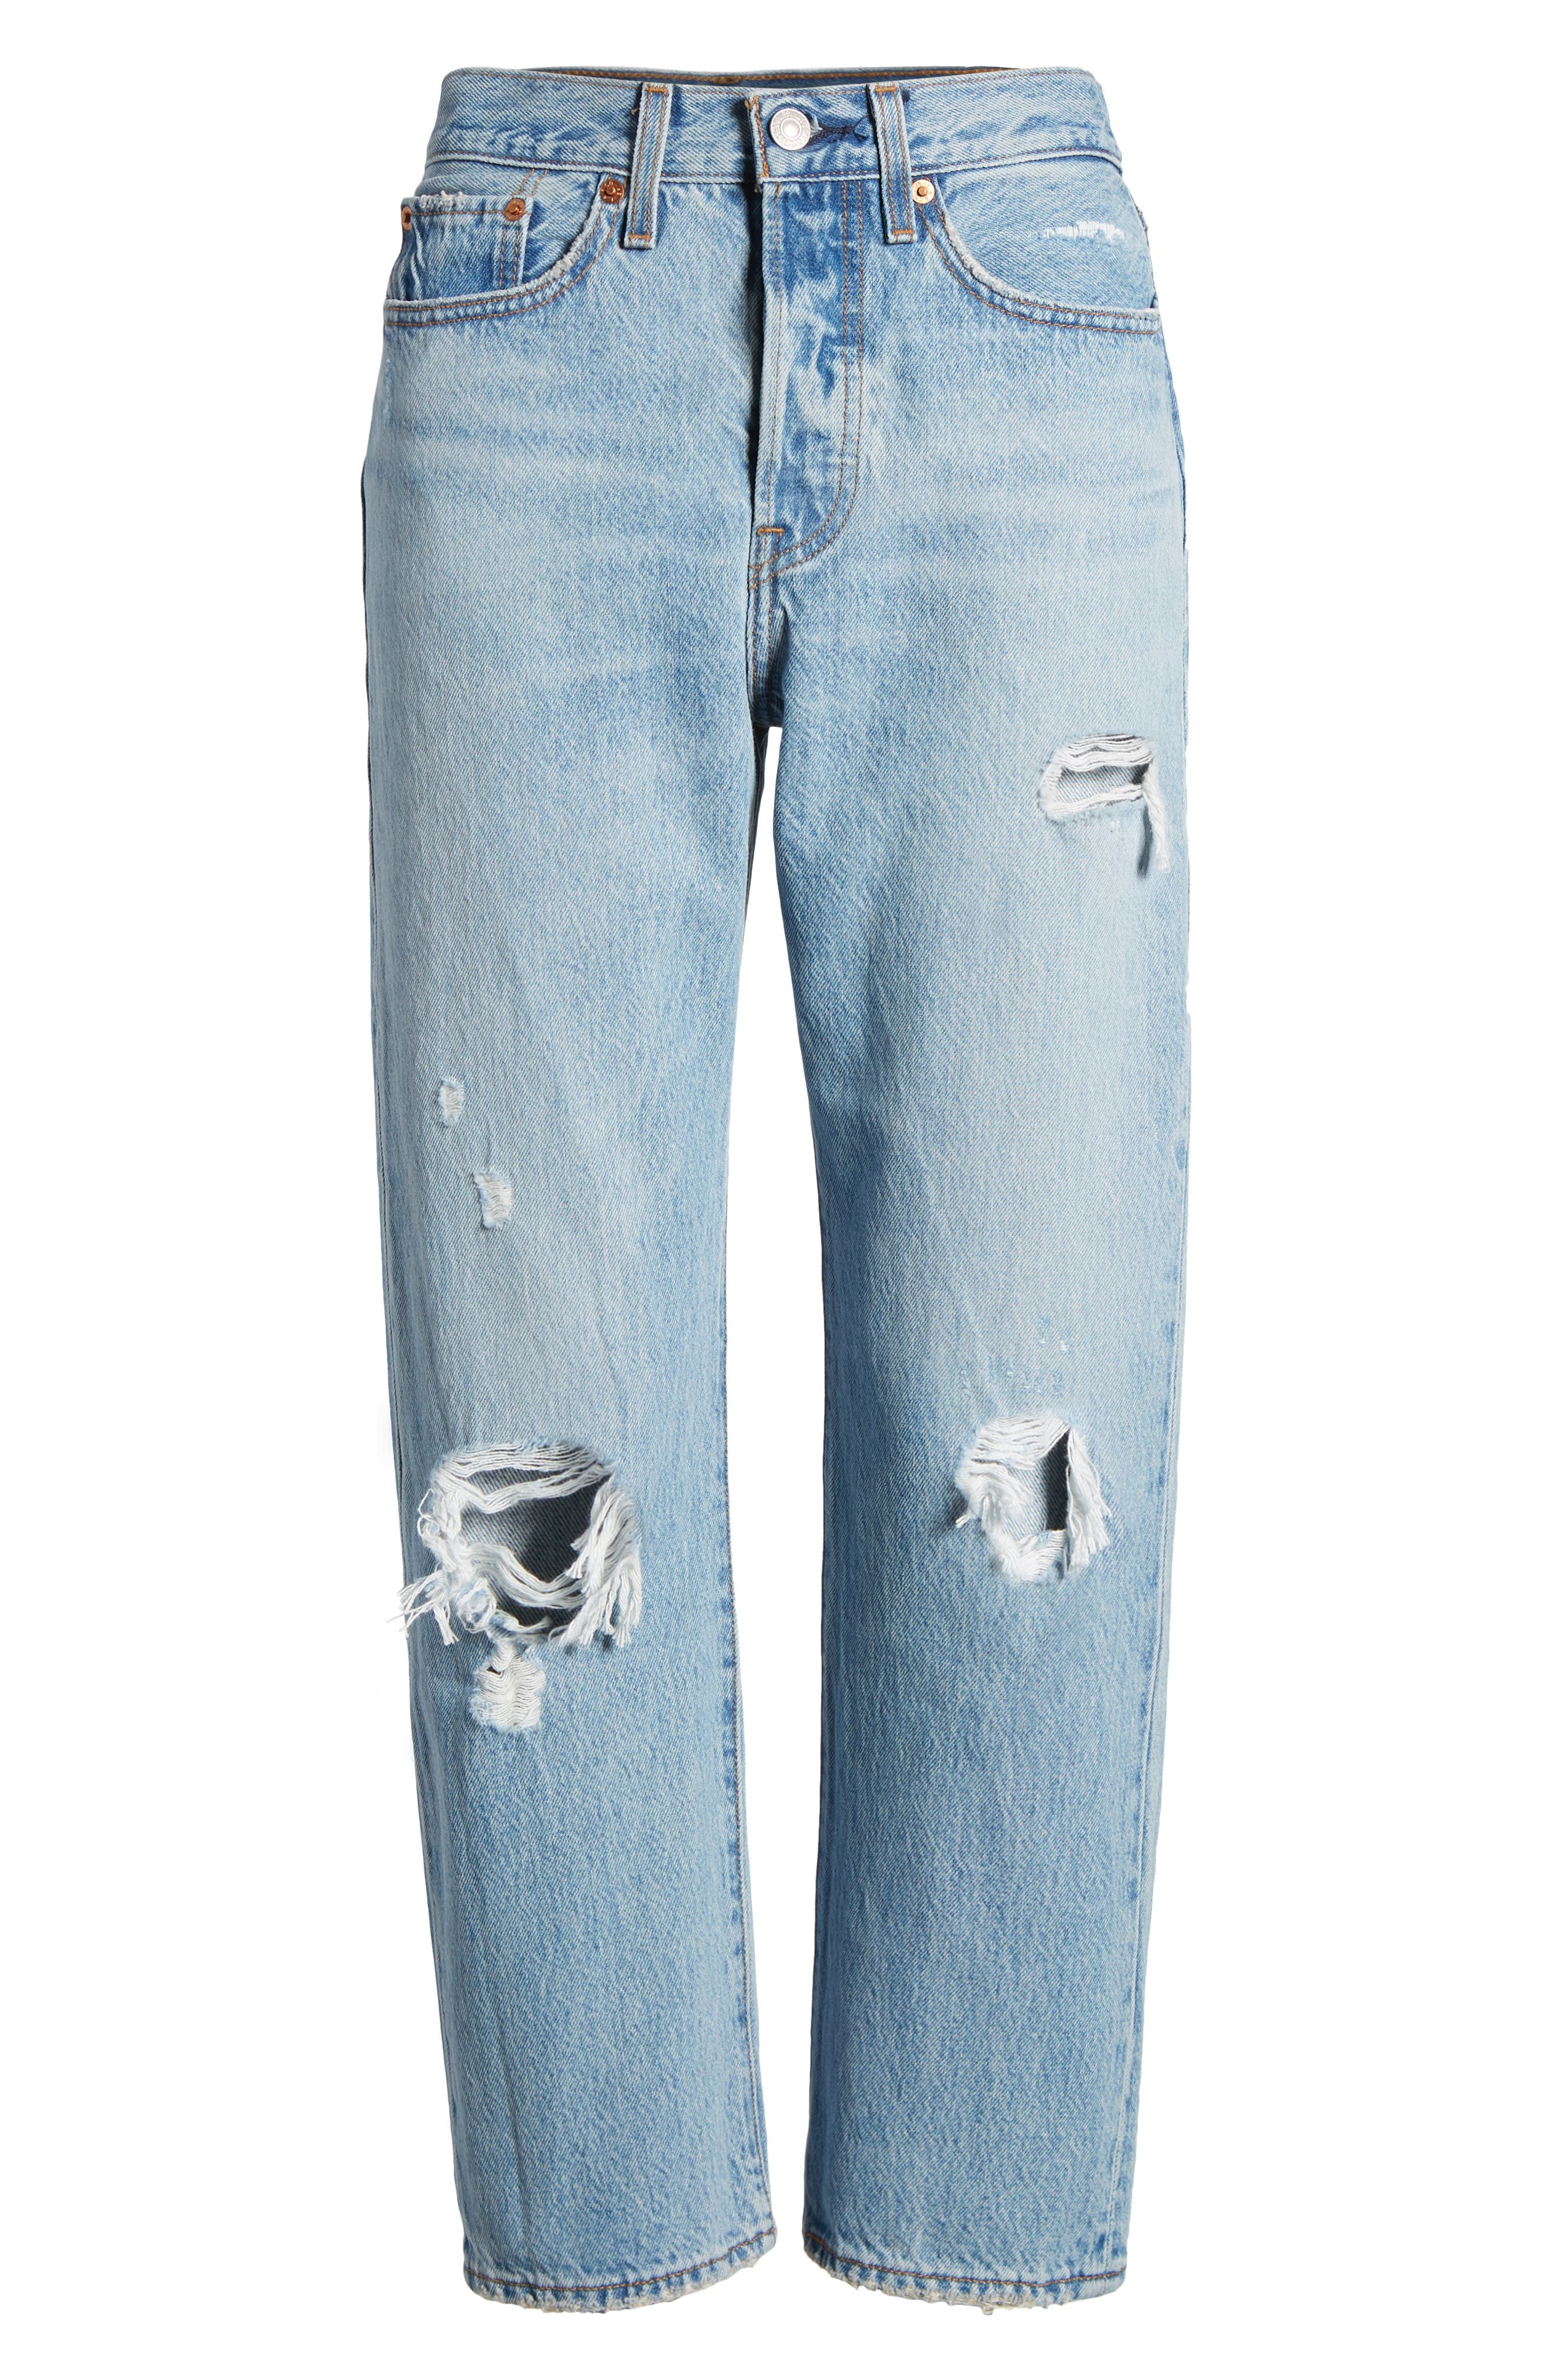 Wedgie Ripped Straight Leg Jeans,                             Alternate thumbnail 7, color,                             AUTHENTICALLY YOURS